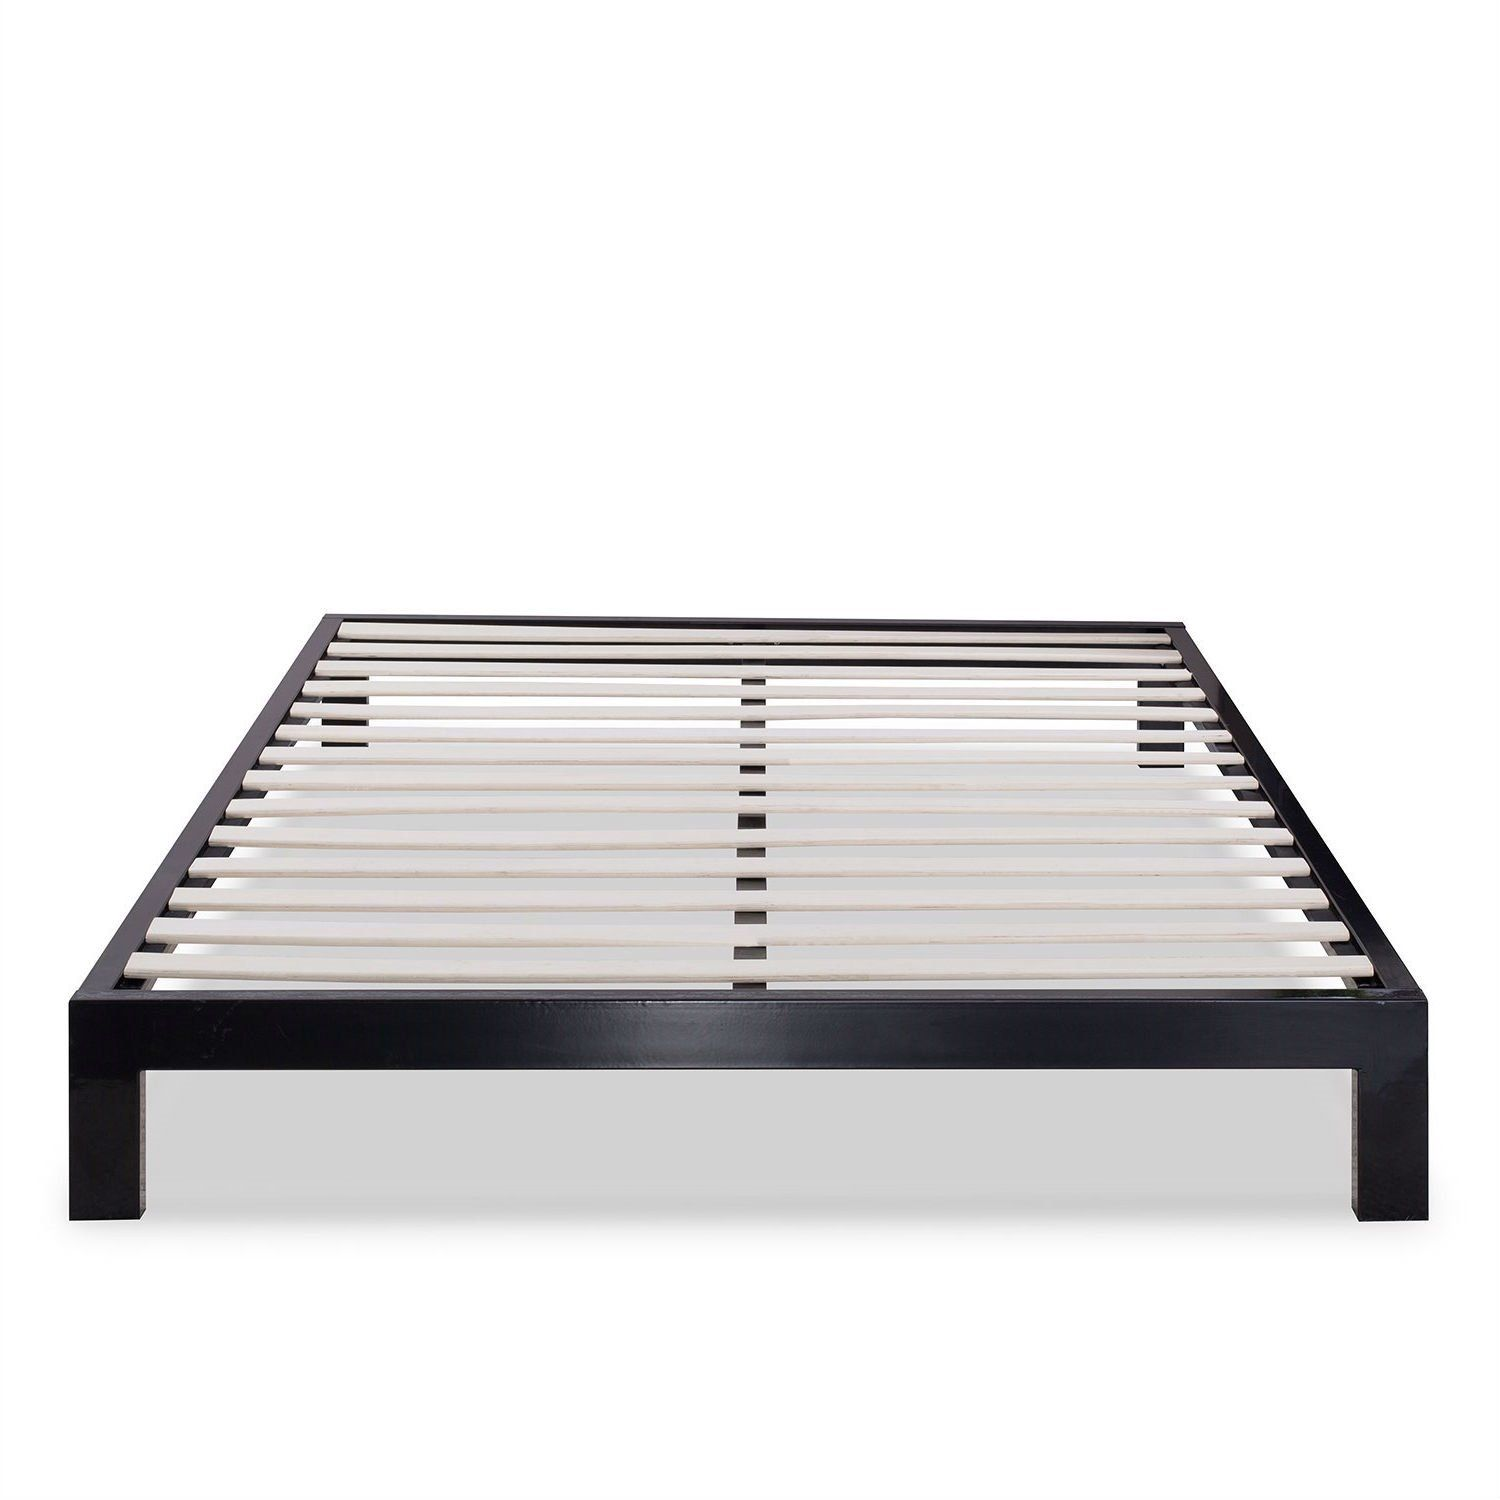 This Queen Modern Black Metal Platform Bed Frame with Wooden Slats ...